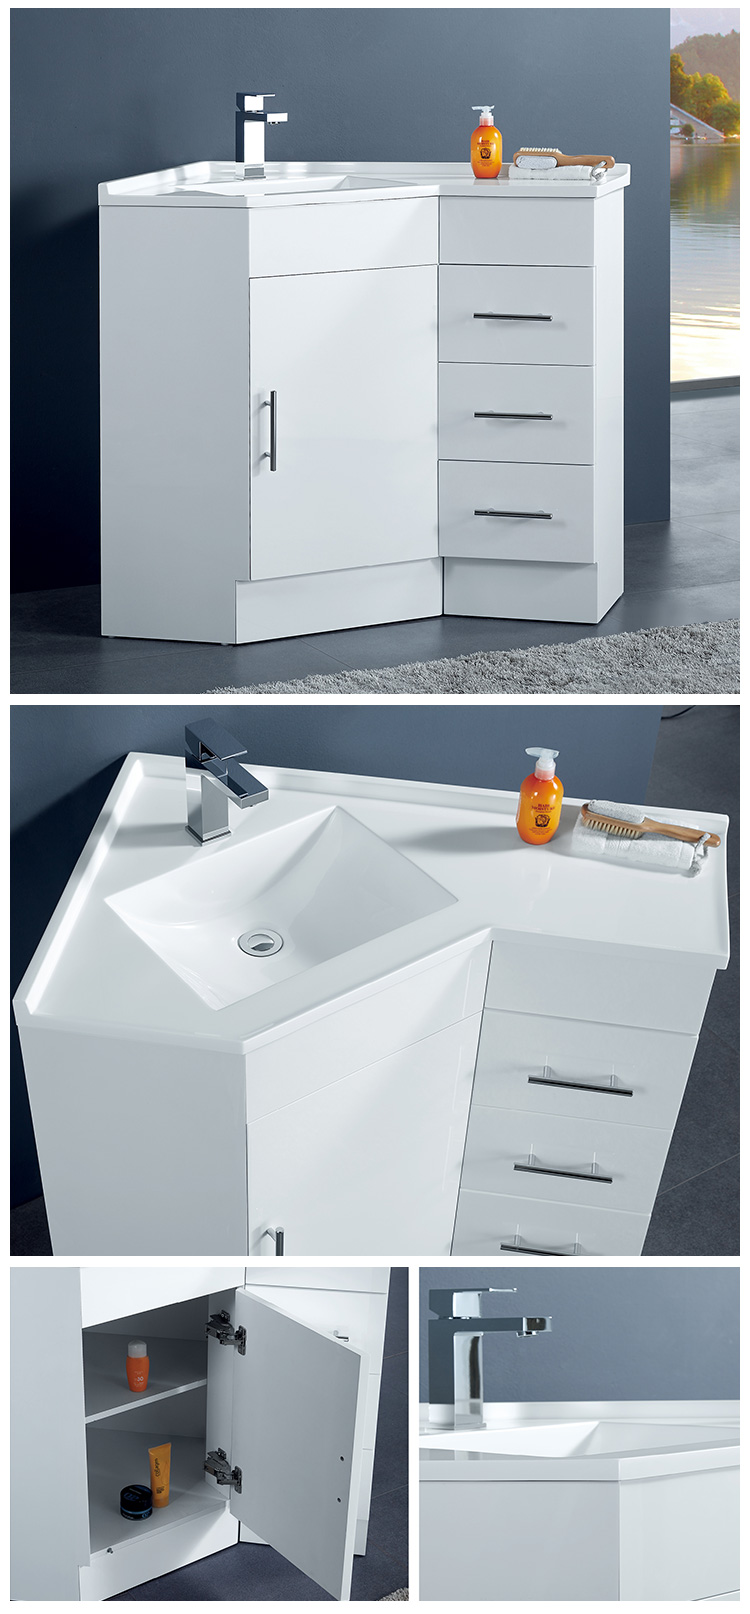 Floorstanding Bath Room Cabinet Corner Make Up Vanity Sink  Cupboard Design Cabinet Setts From Australia